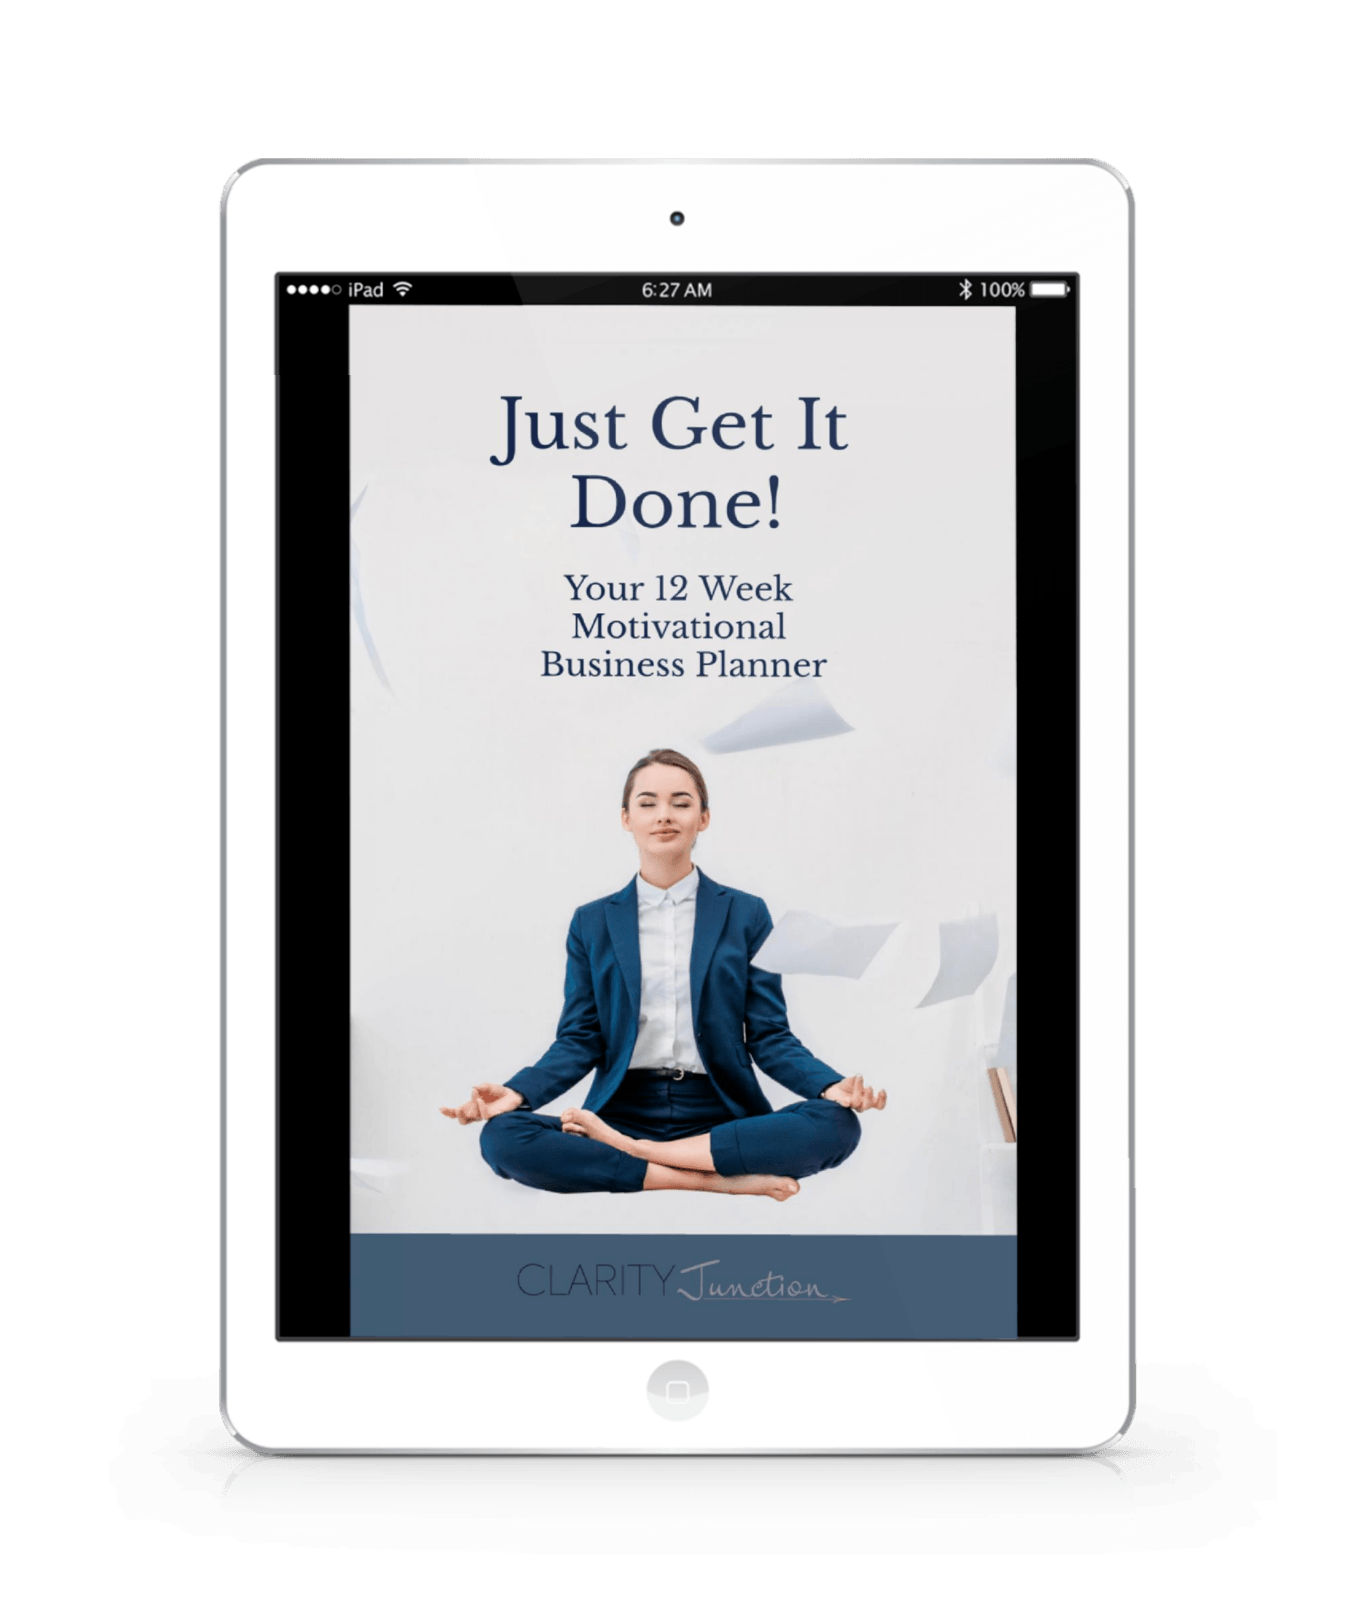 Just Get It Done! 12 Week Motivational Business Planner